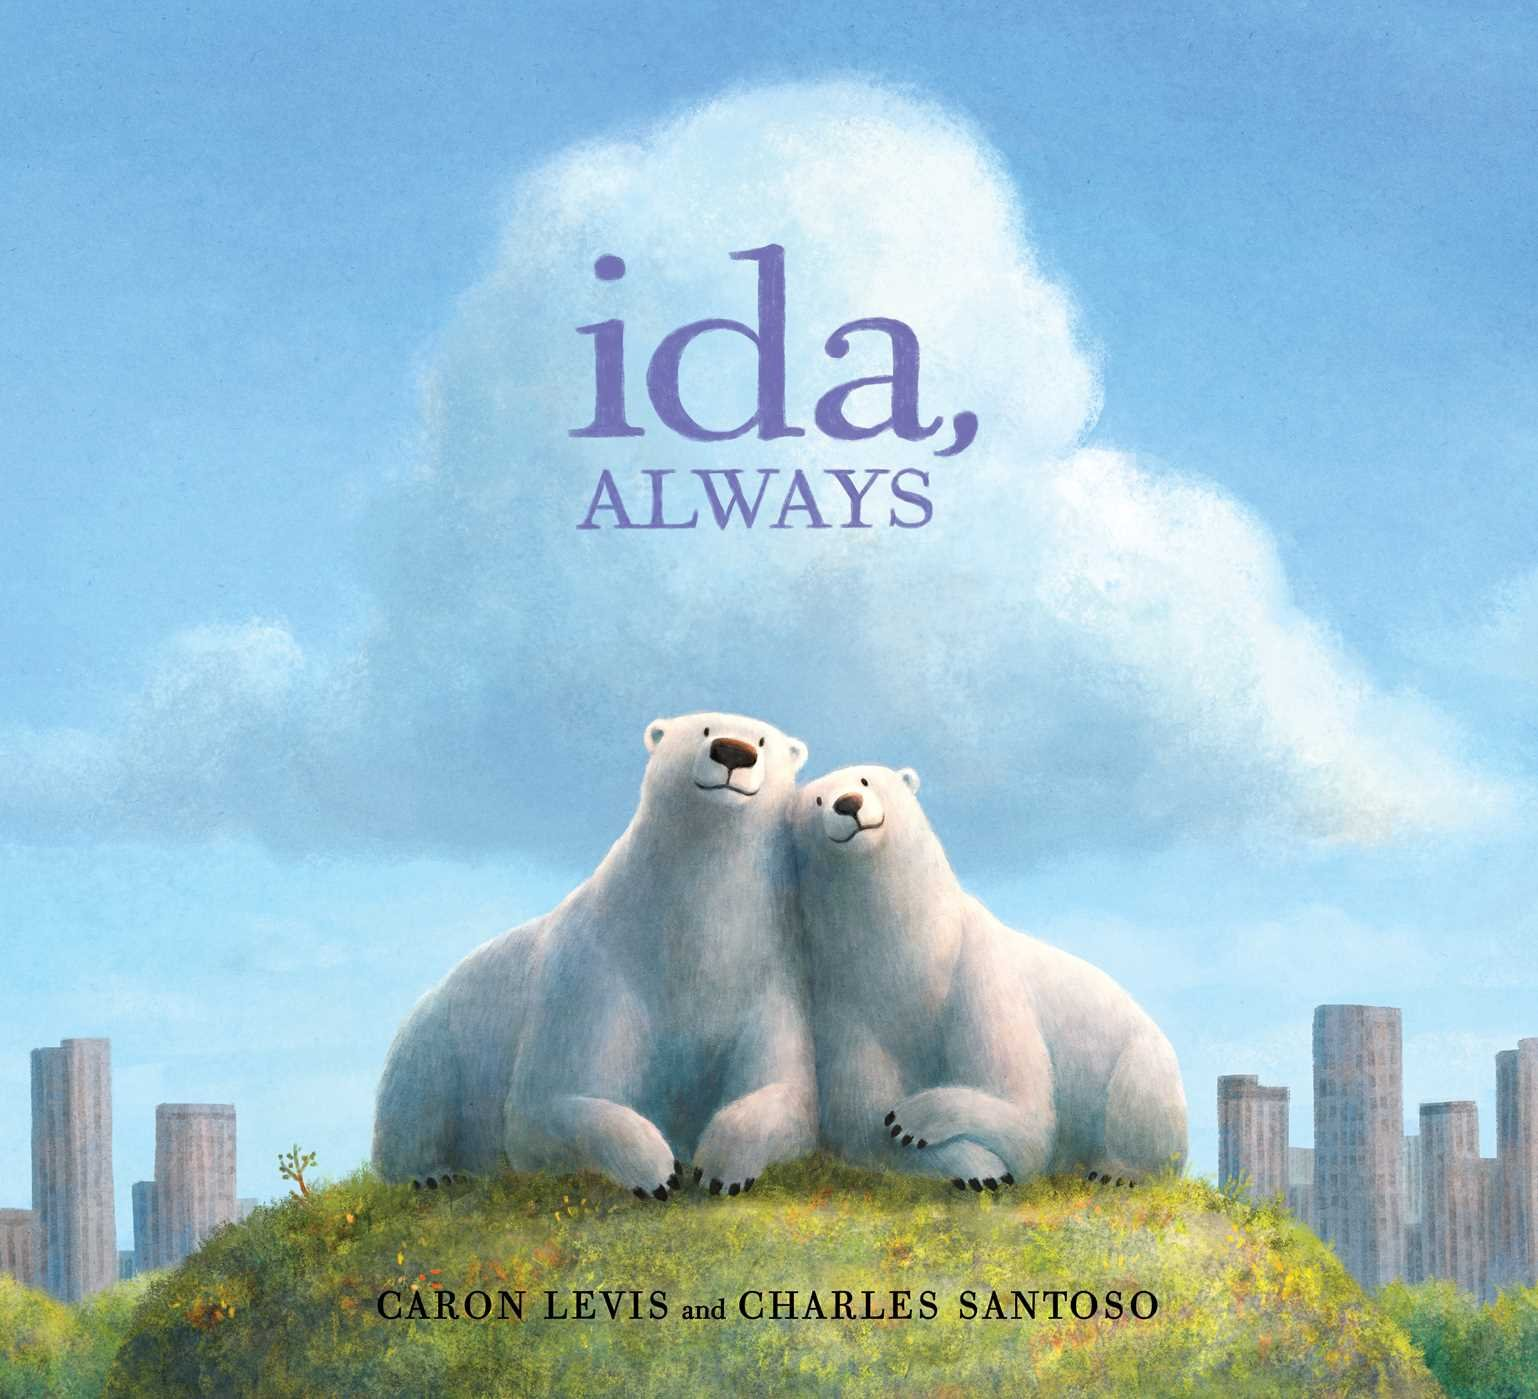 Image result for ida, always""